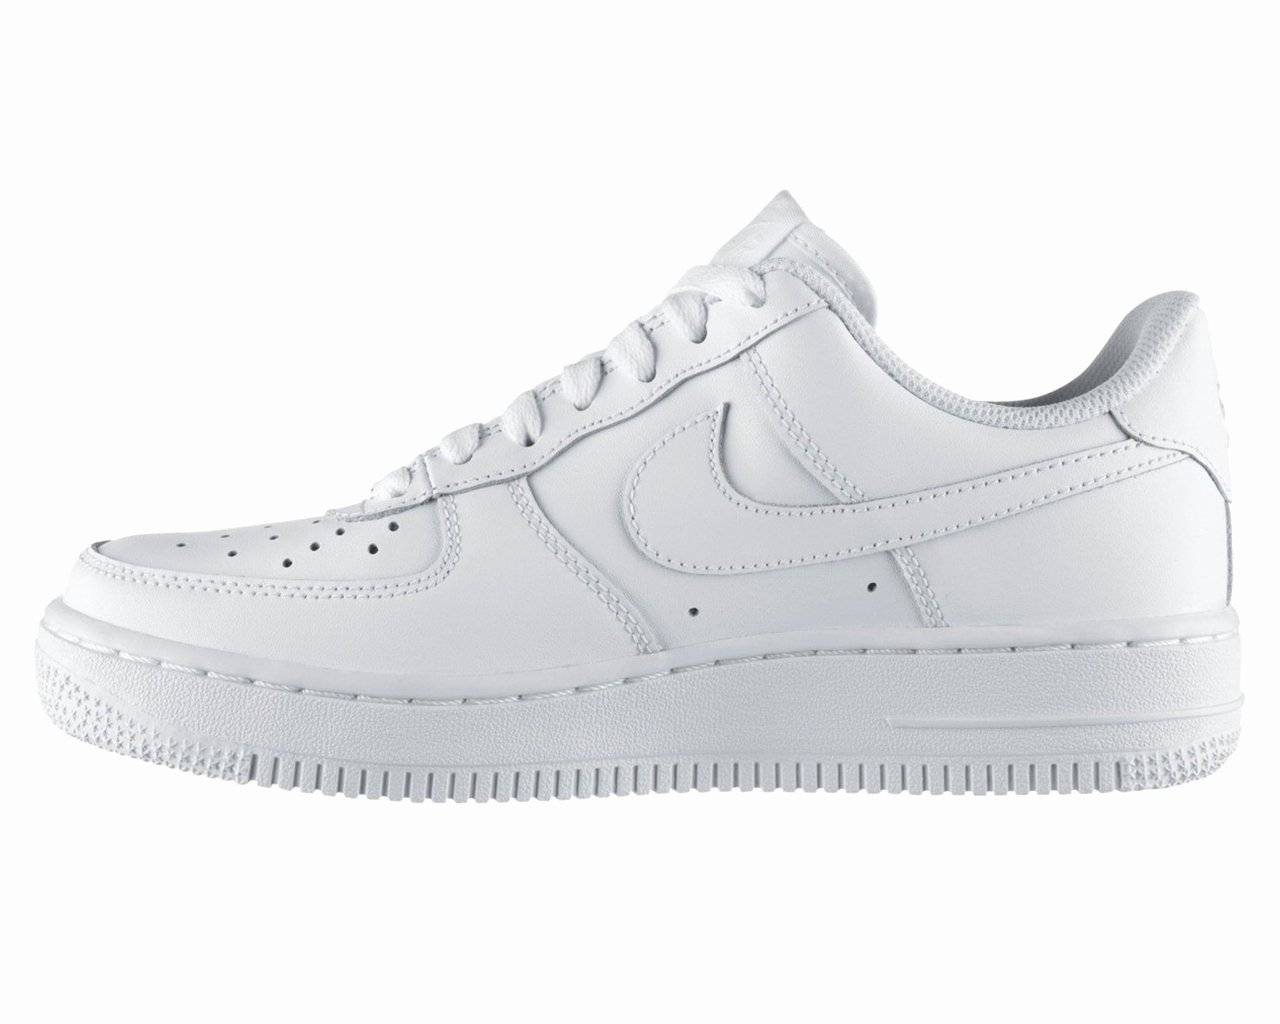 Air force Lost Receipt form New Boys Girls Nike Air force 1 Gs 117 White Leather